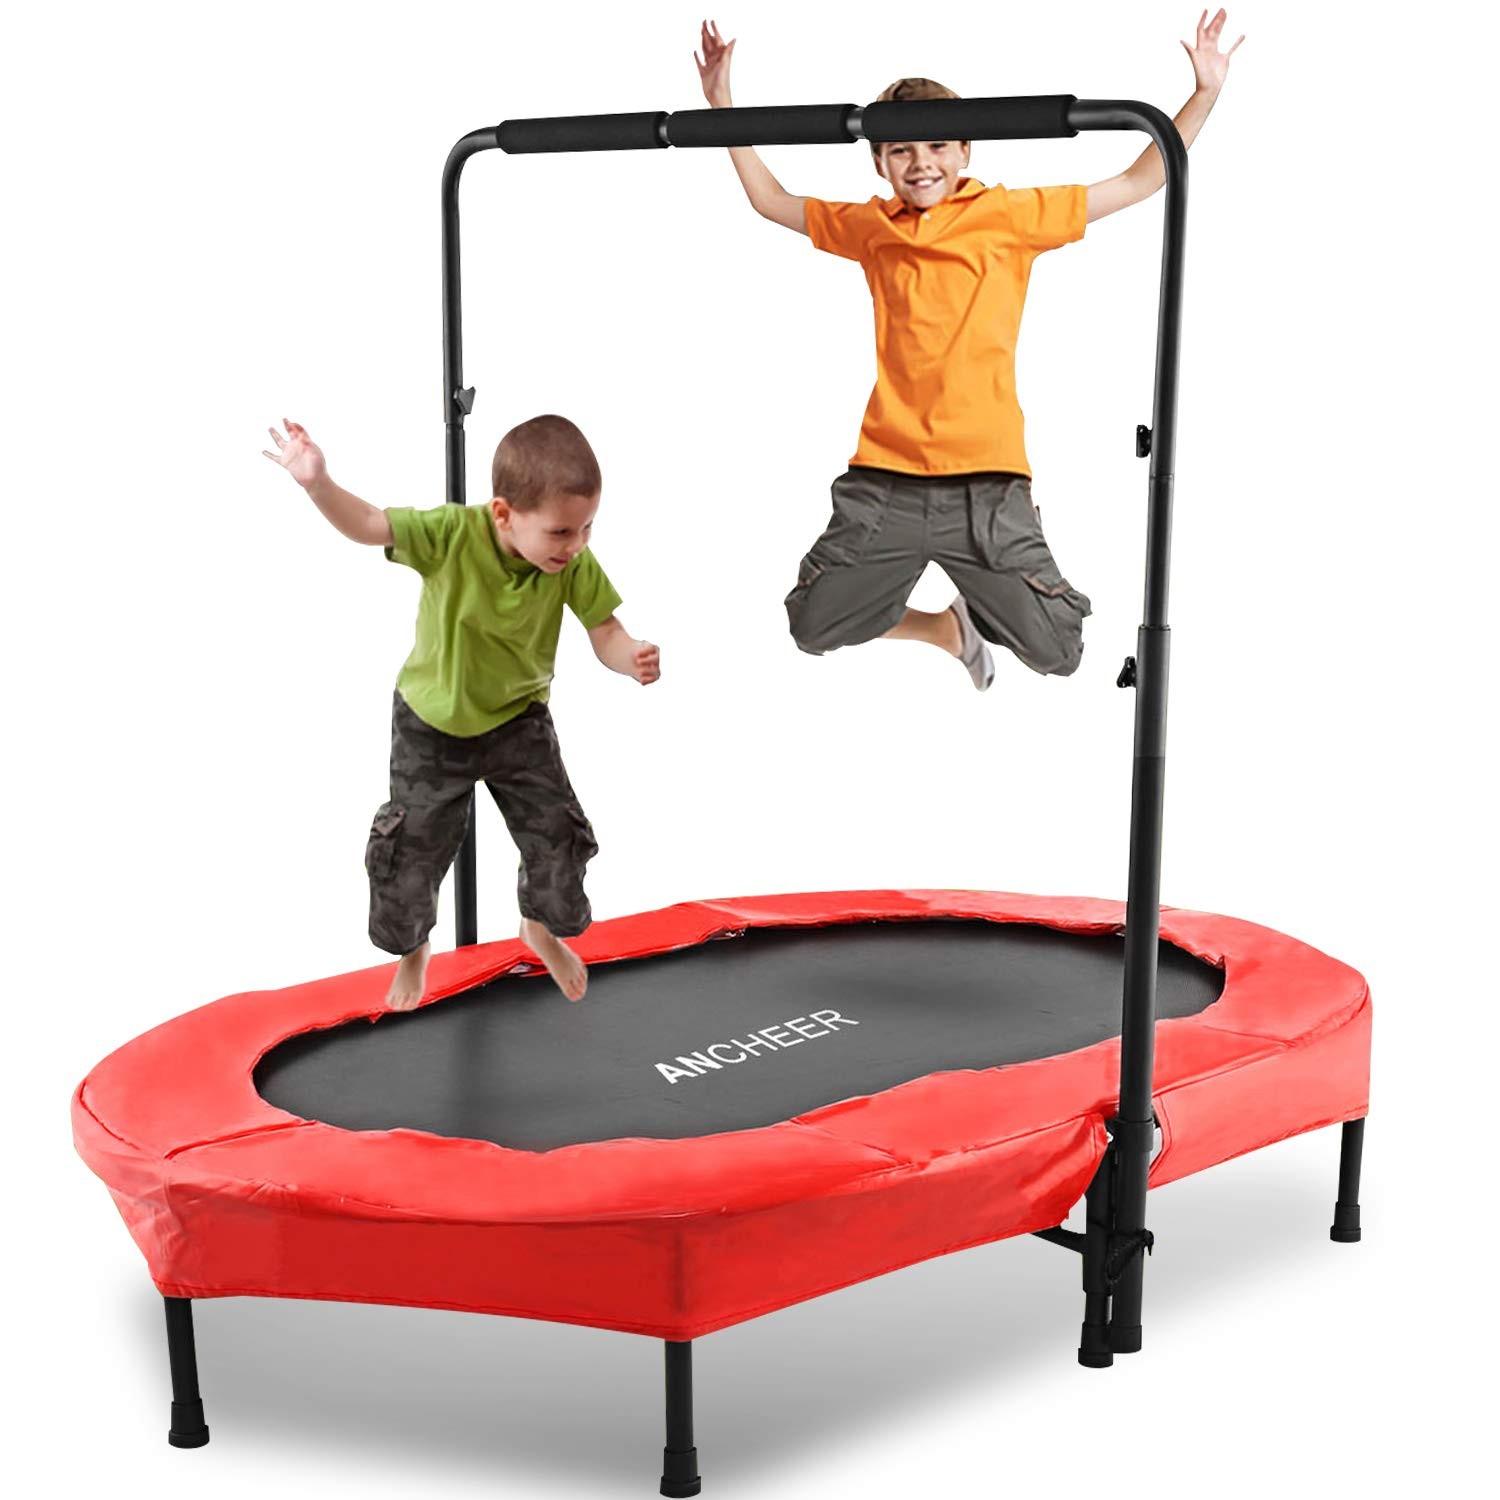 ANCHEER Foldable Trampoline